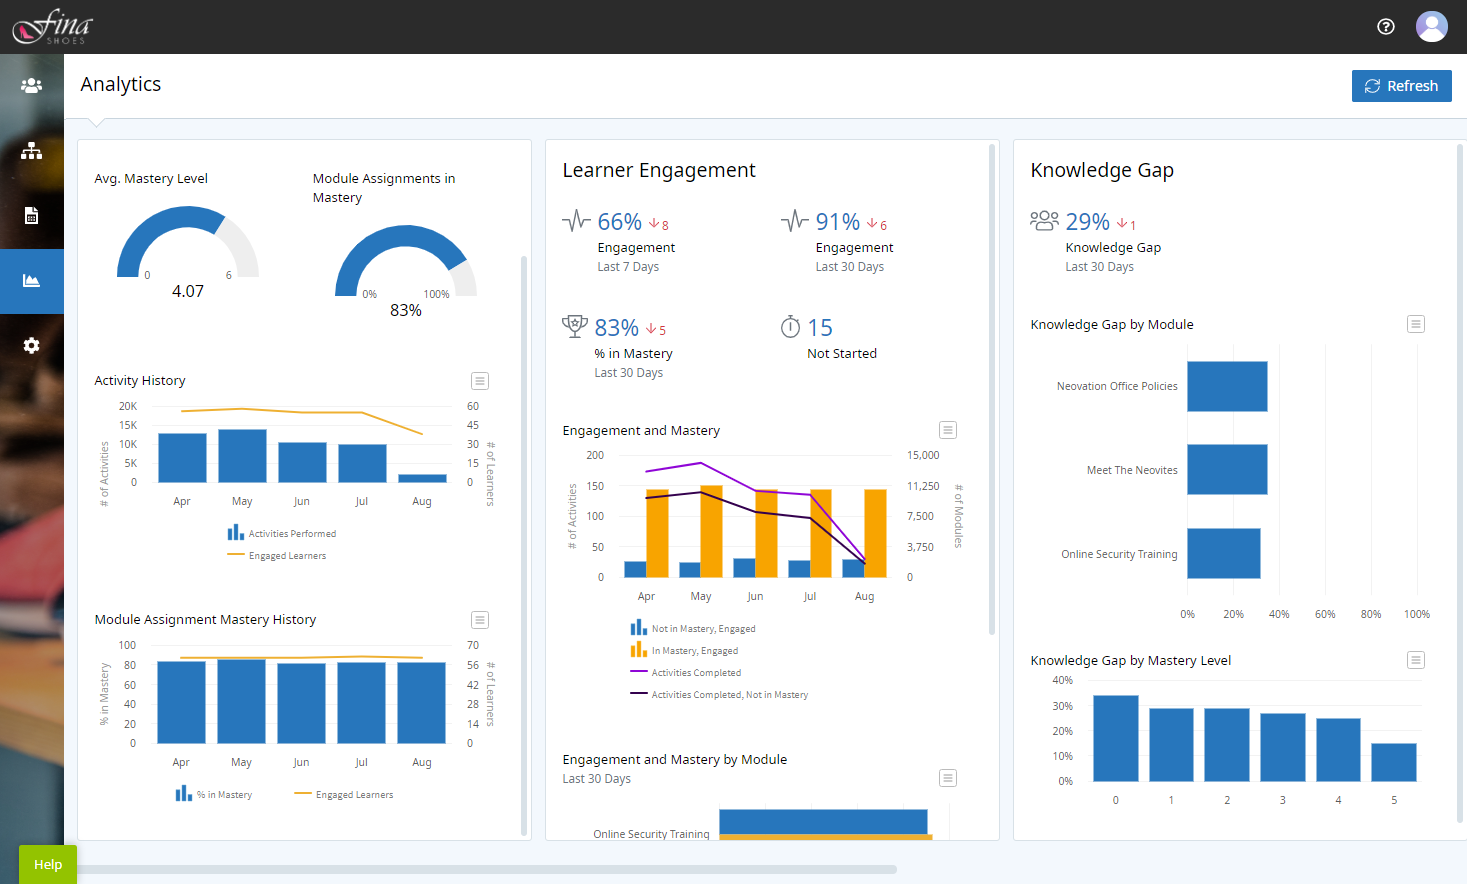 Analytics Dashboard with three panels. From left-to-right the panels are Overview, Learner Engagement, and Knowledge Gap. Each panel has summary metrics at the top and graphs below.